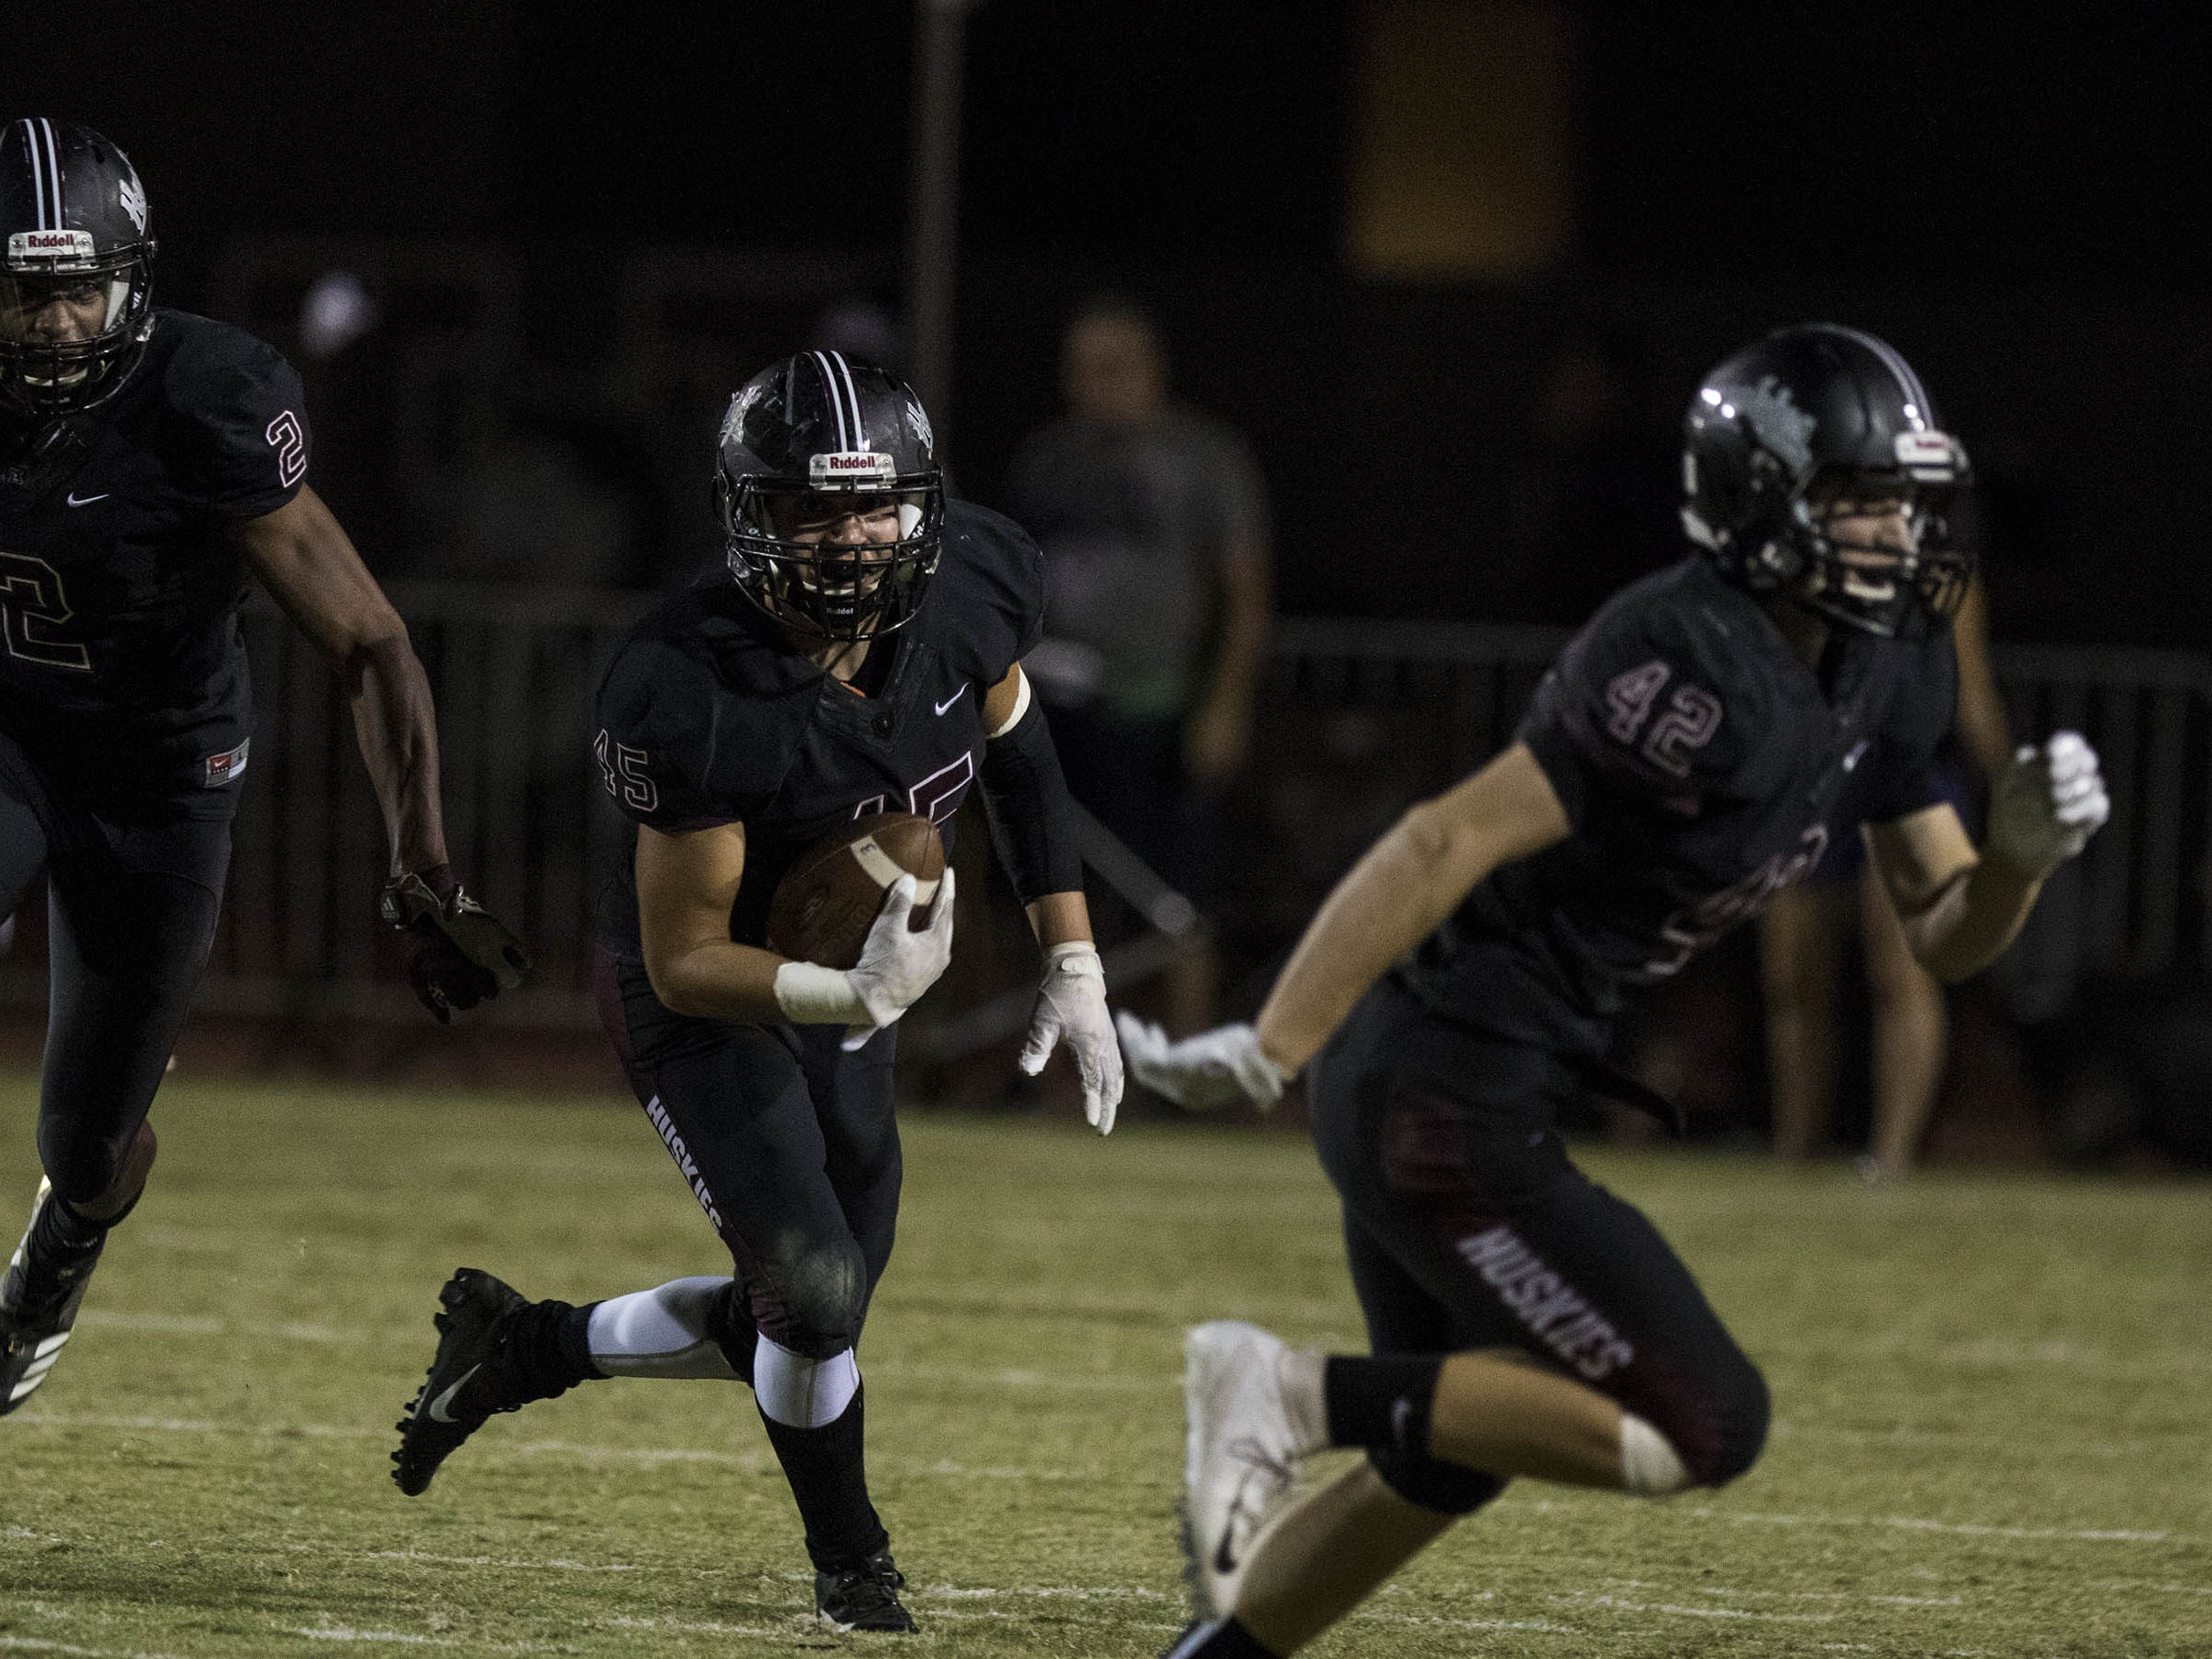 Hamilton's Nathaniel Zimmerman looks for blockers after making an interception against Chandler during their game in Chandler, Friday, Oct. 26, 2018. #azhsfb